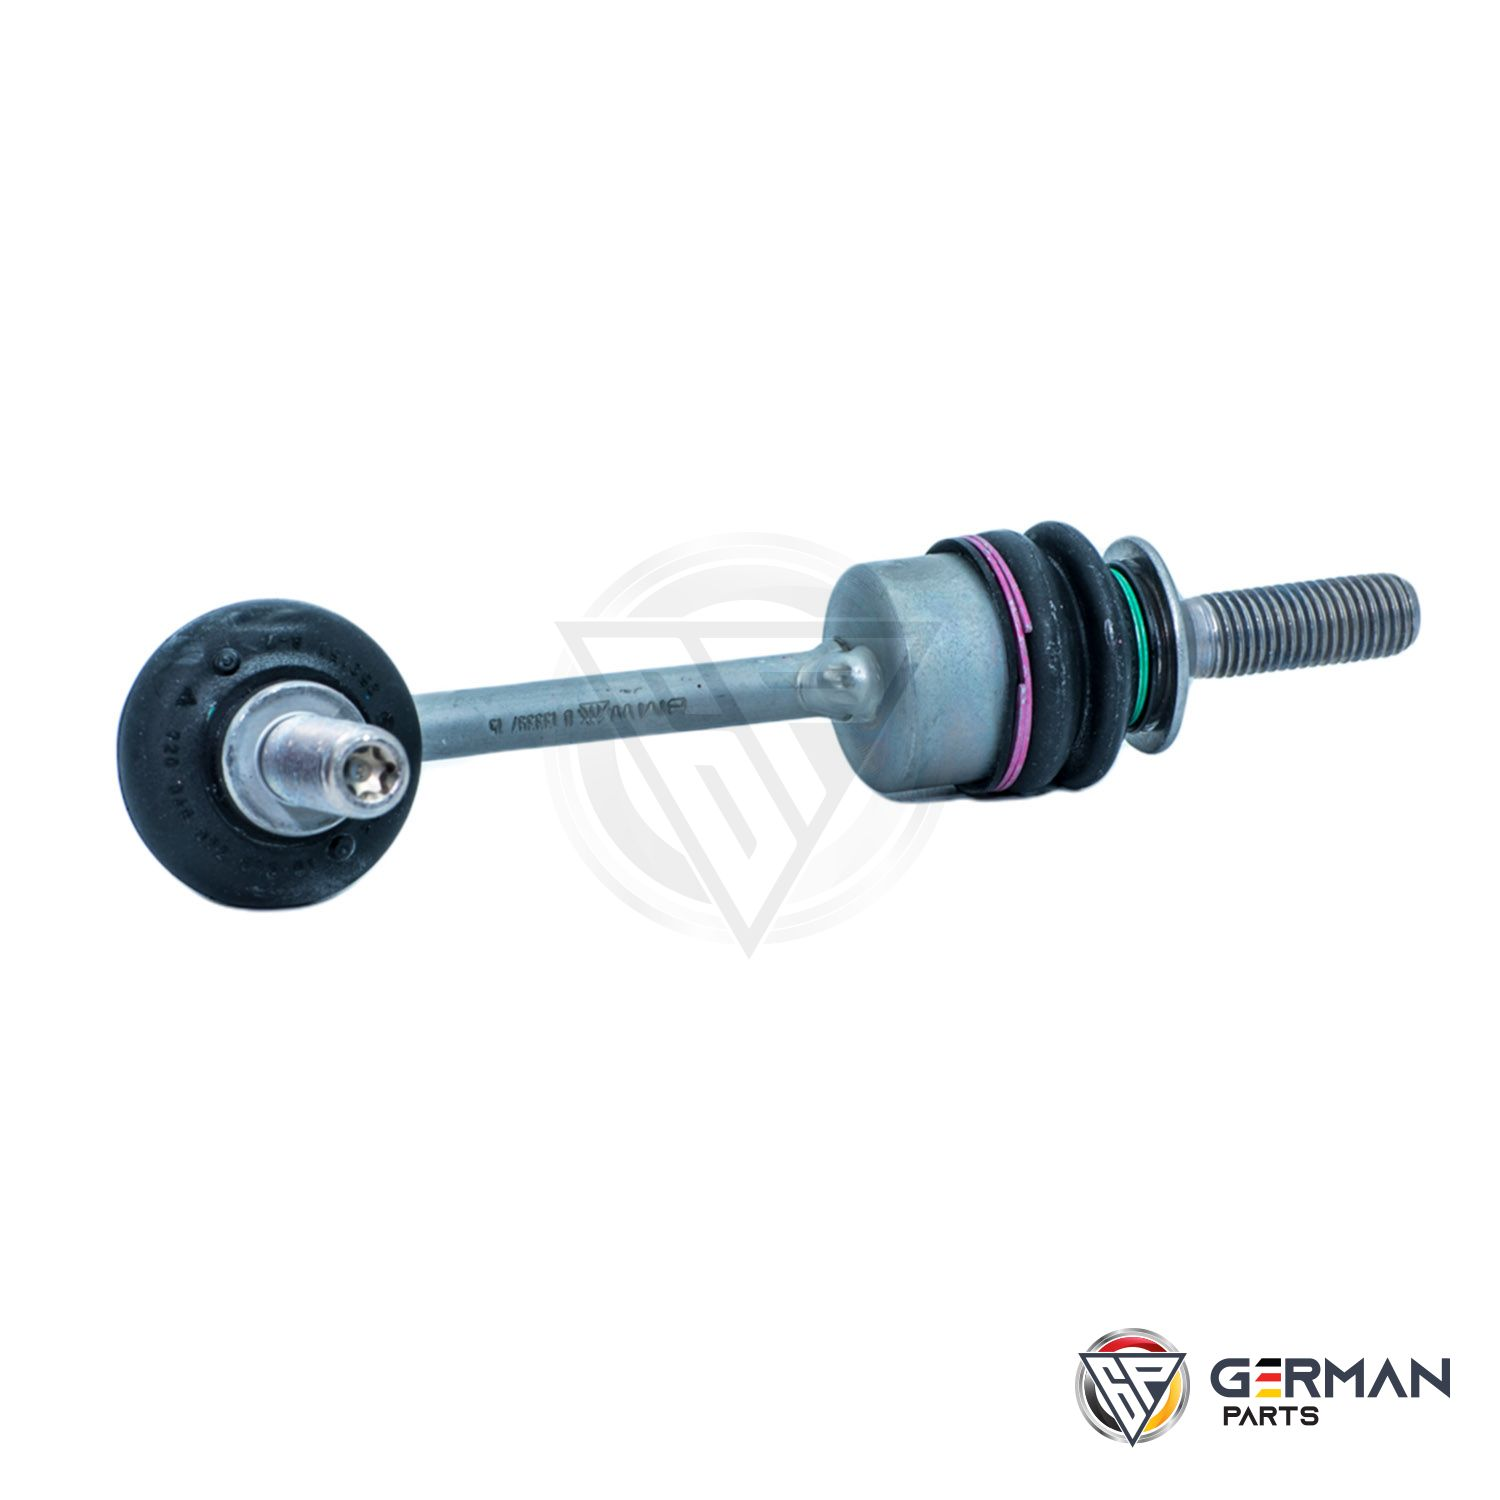 Buy Genuine BMW Stabilizer Link Rear 33556857626 - German Parts